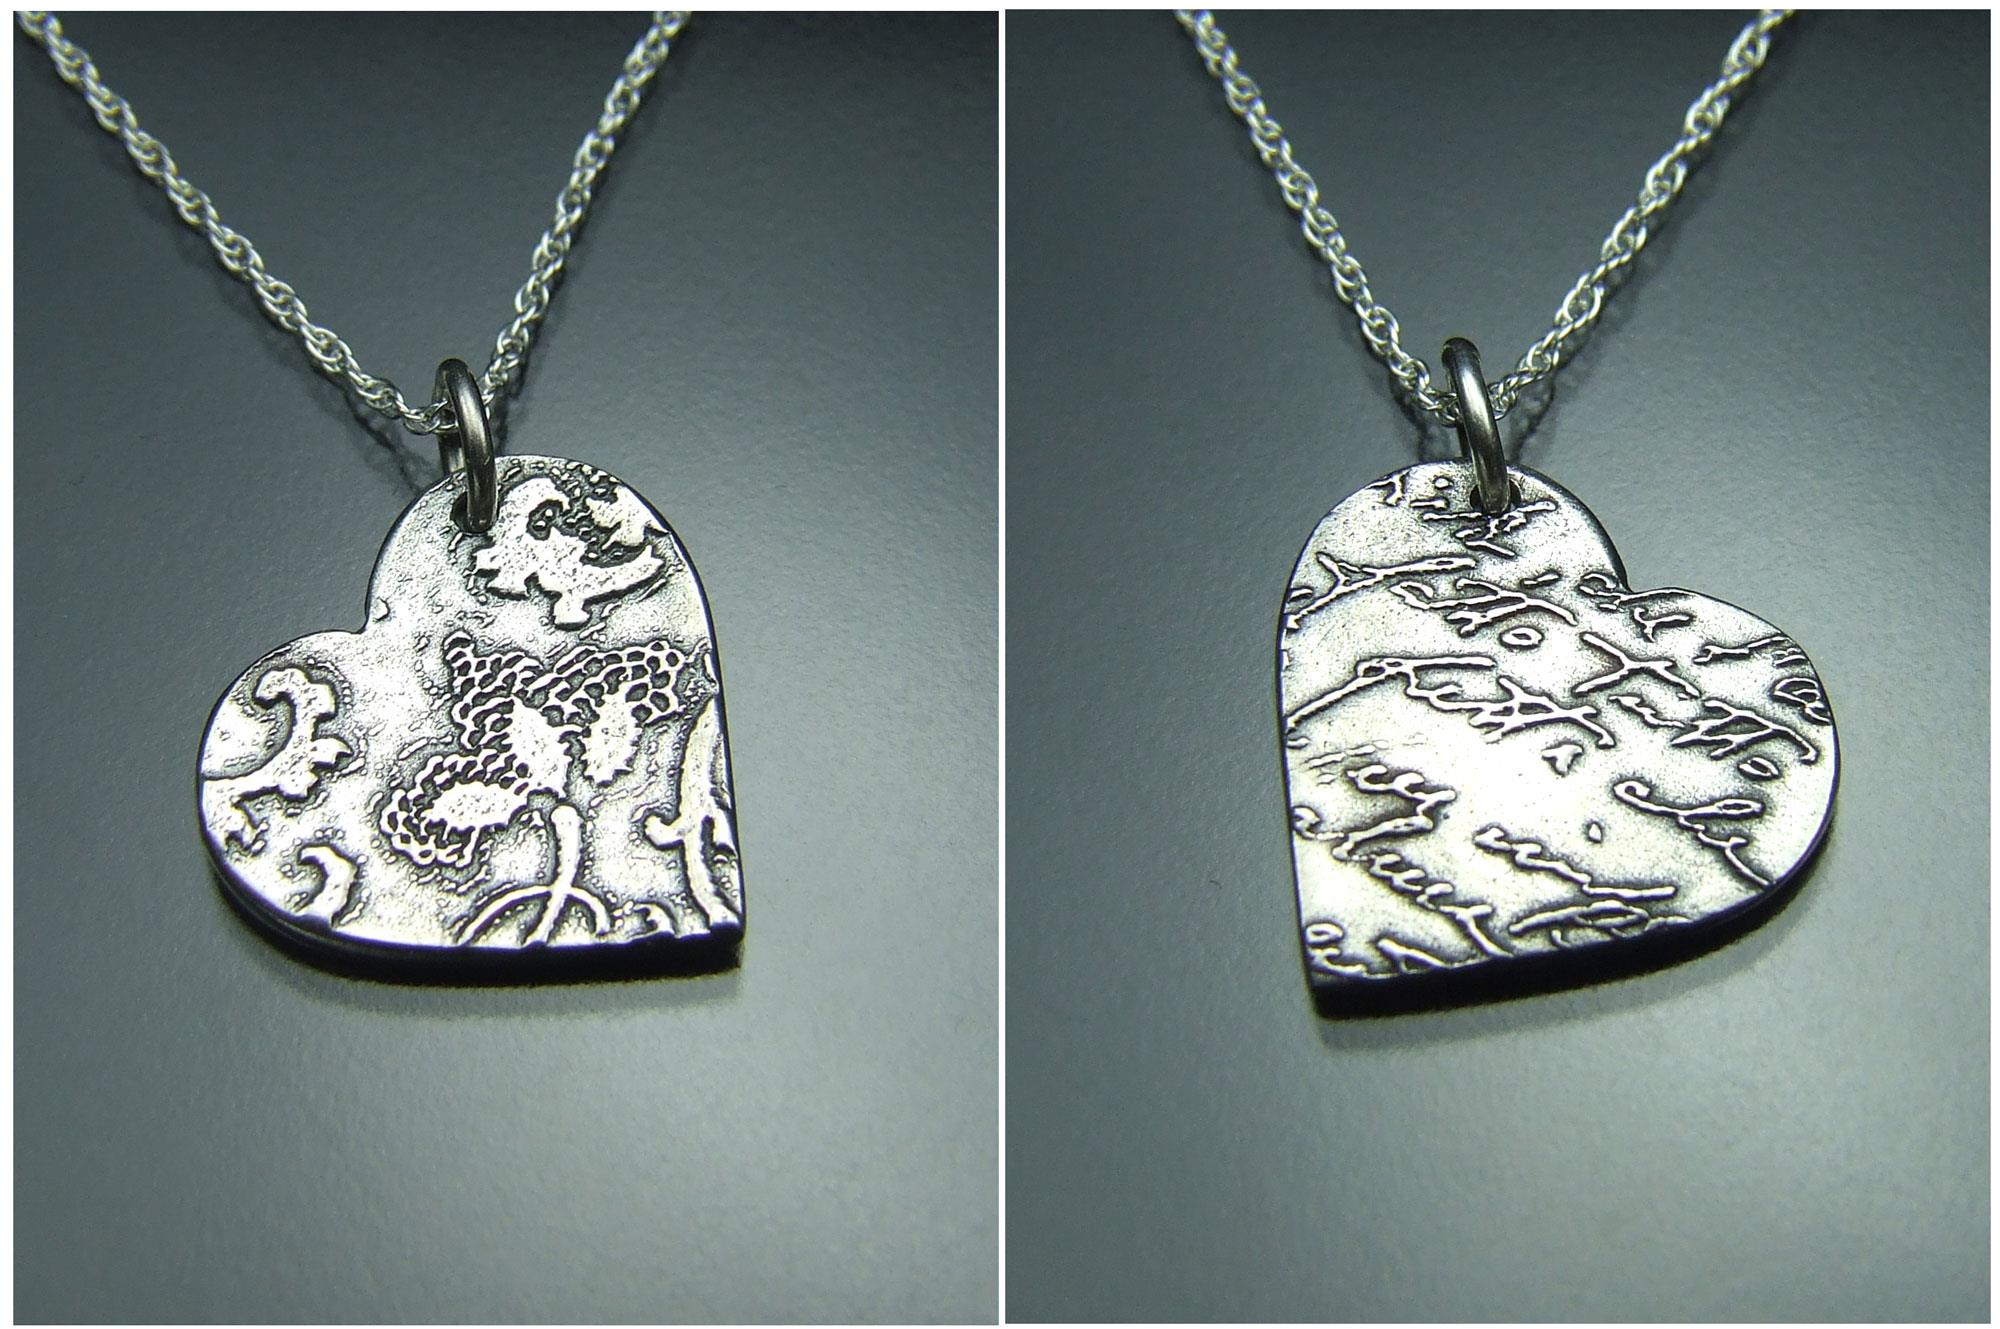 Craft Bench Workshop Silver Clay Pendant Huguenot Museum